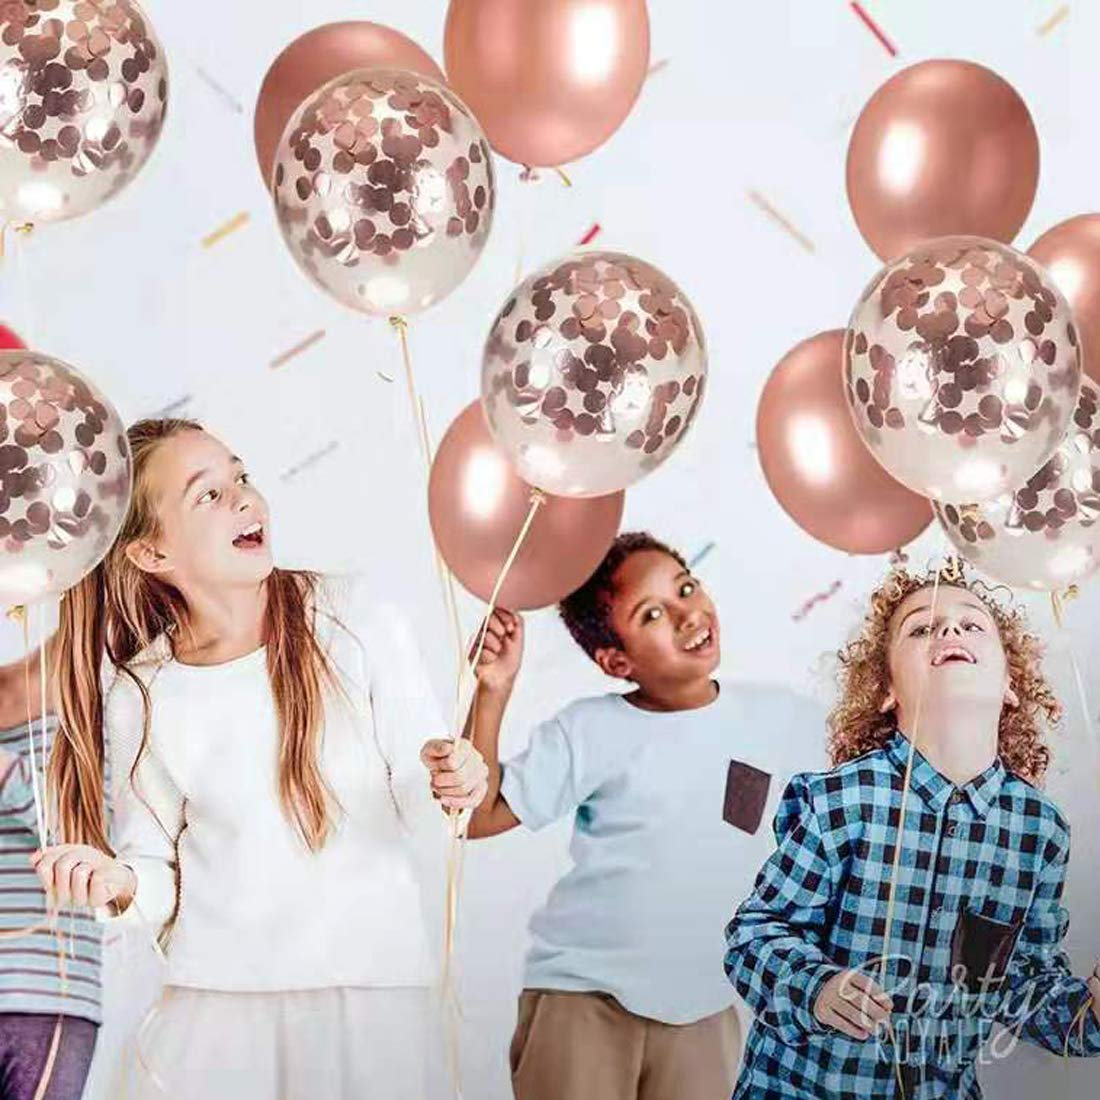 Set Contains 5 Gold Sequin Balloons and 5 Purple Chrome Balloons Purple Suitable for Birthday Wedding Parties Baby Shower Etc. SYNUO 10pcs12Sequined Metal Combination Latex Balloon